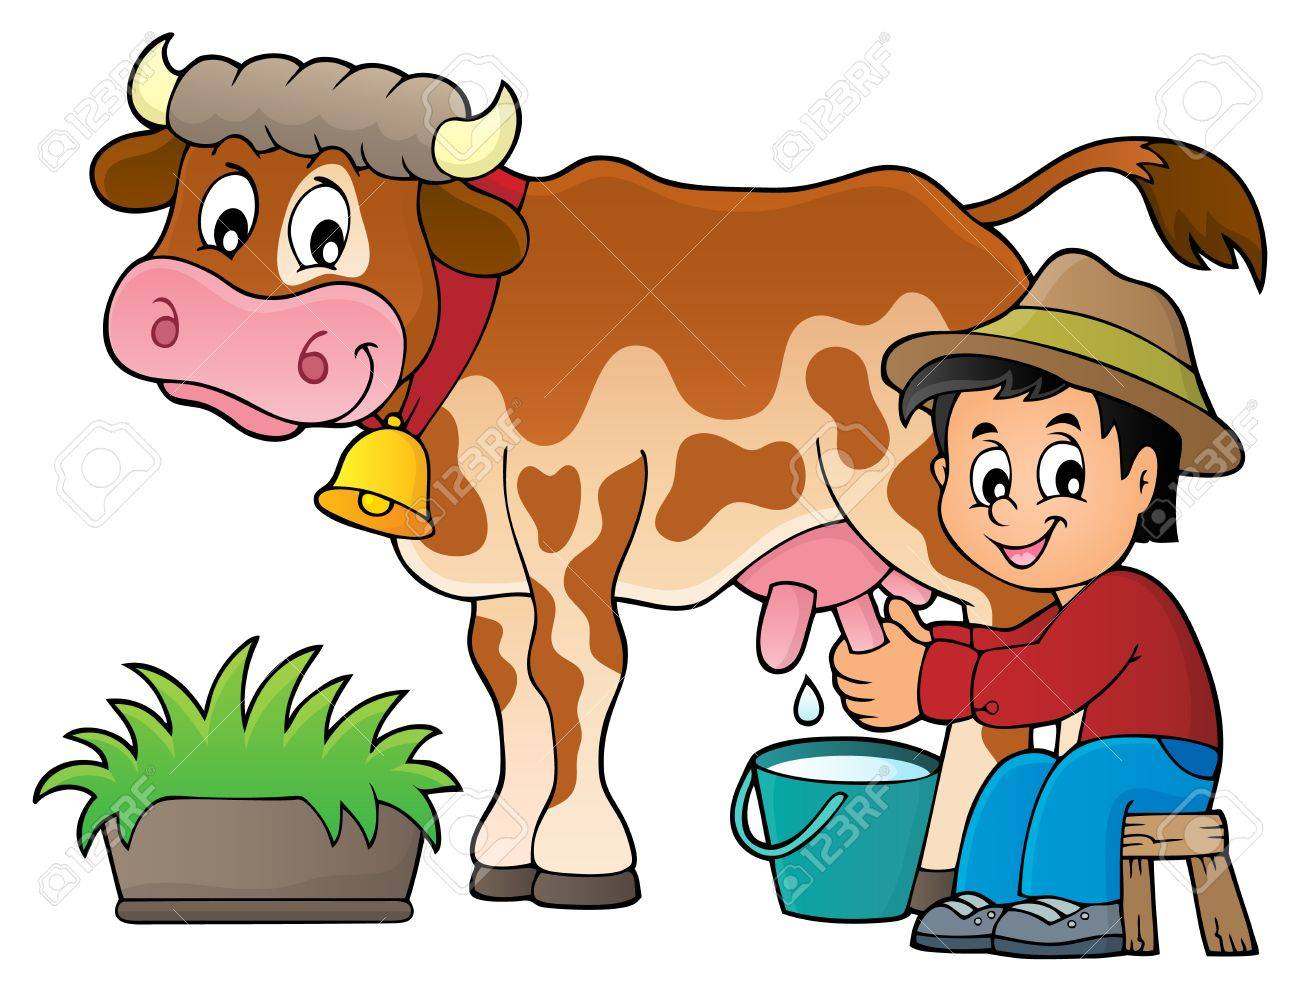 farmer milking cow image 1 eps10 vector illustration royalty free rh 123rf com dairy cow head clipart free dairy cow clipart